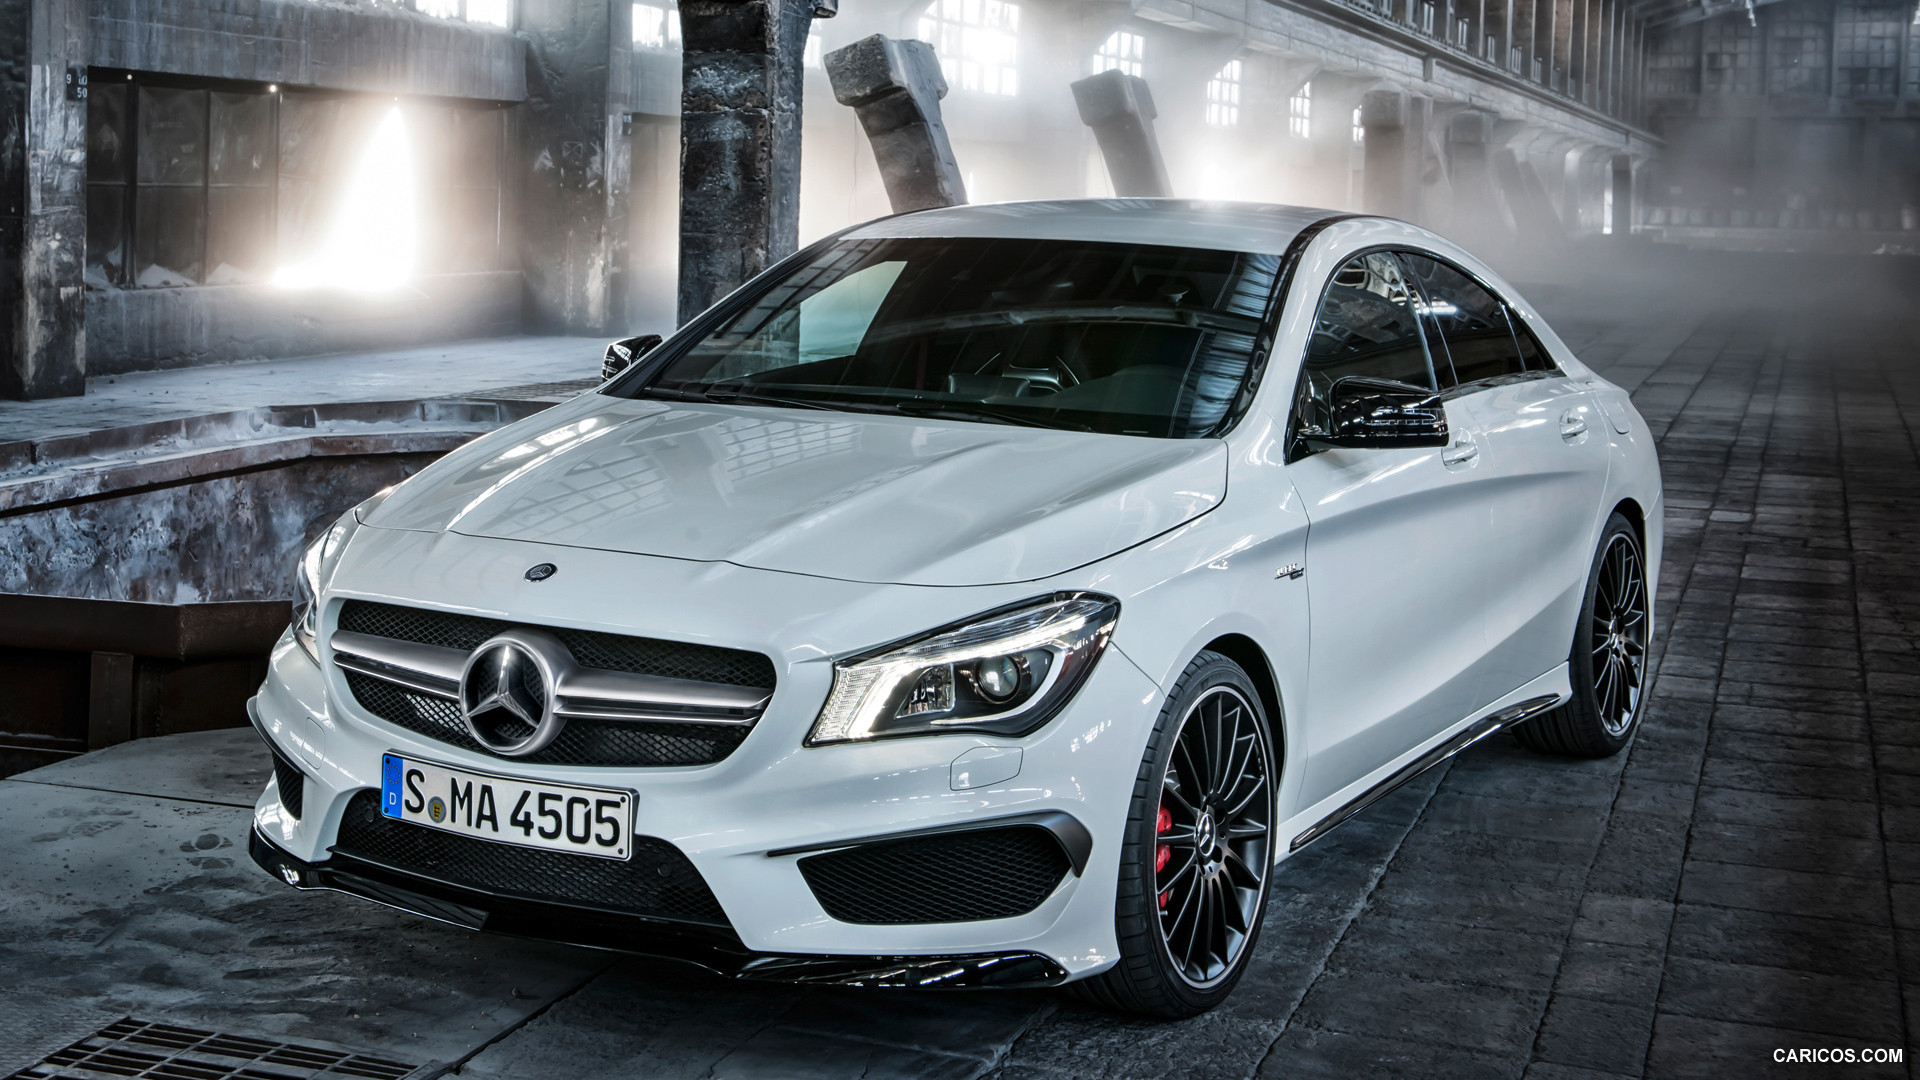 2014 Mercedes Benz CLA 45 AMG   Front HD Wallpaper 20 1920x1080